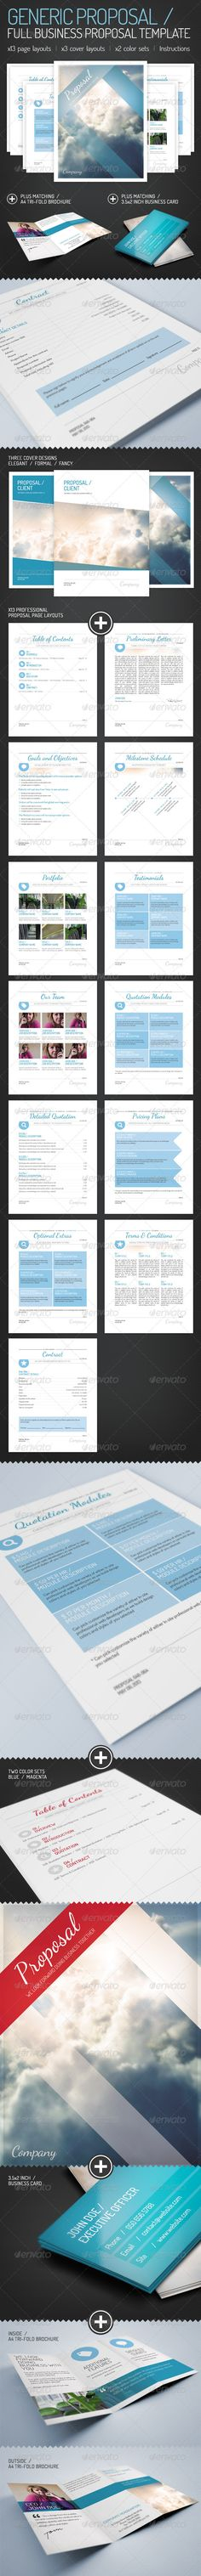 construction proposal templates%0A Content Marketing Proposal V    Design inspiration  Inspiration and Words